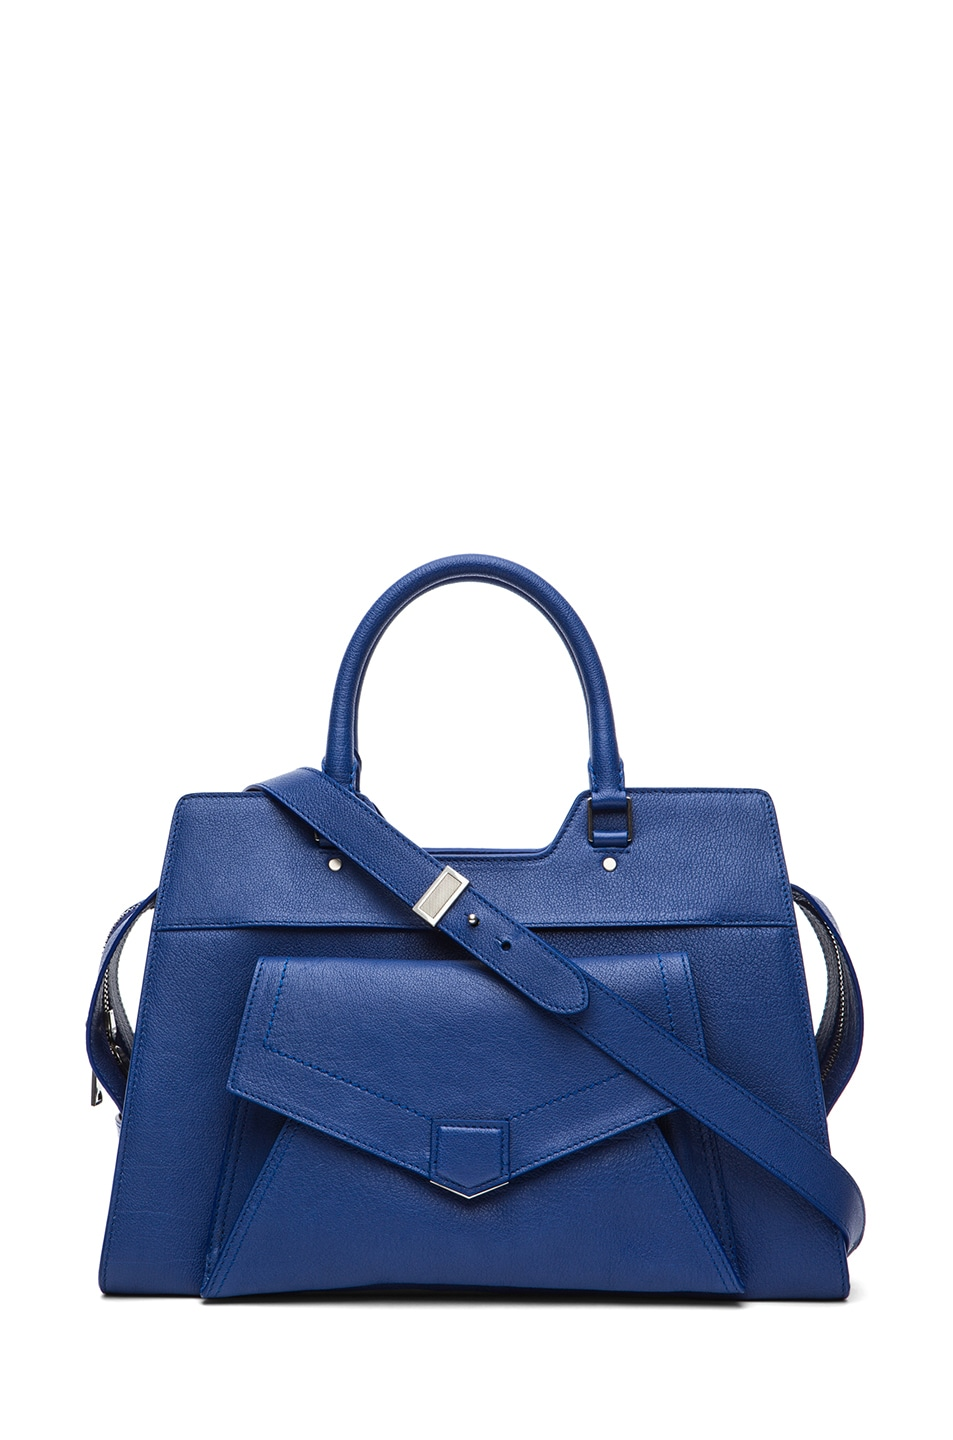 Image 1 of Proenza Schouler Small PS13 in Royal Blue